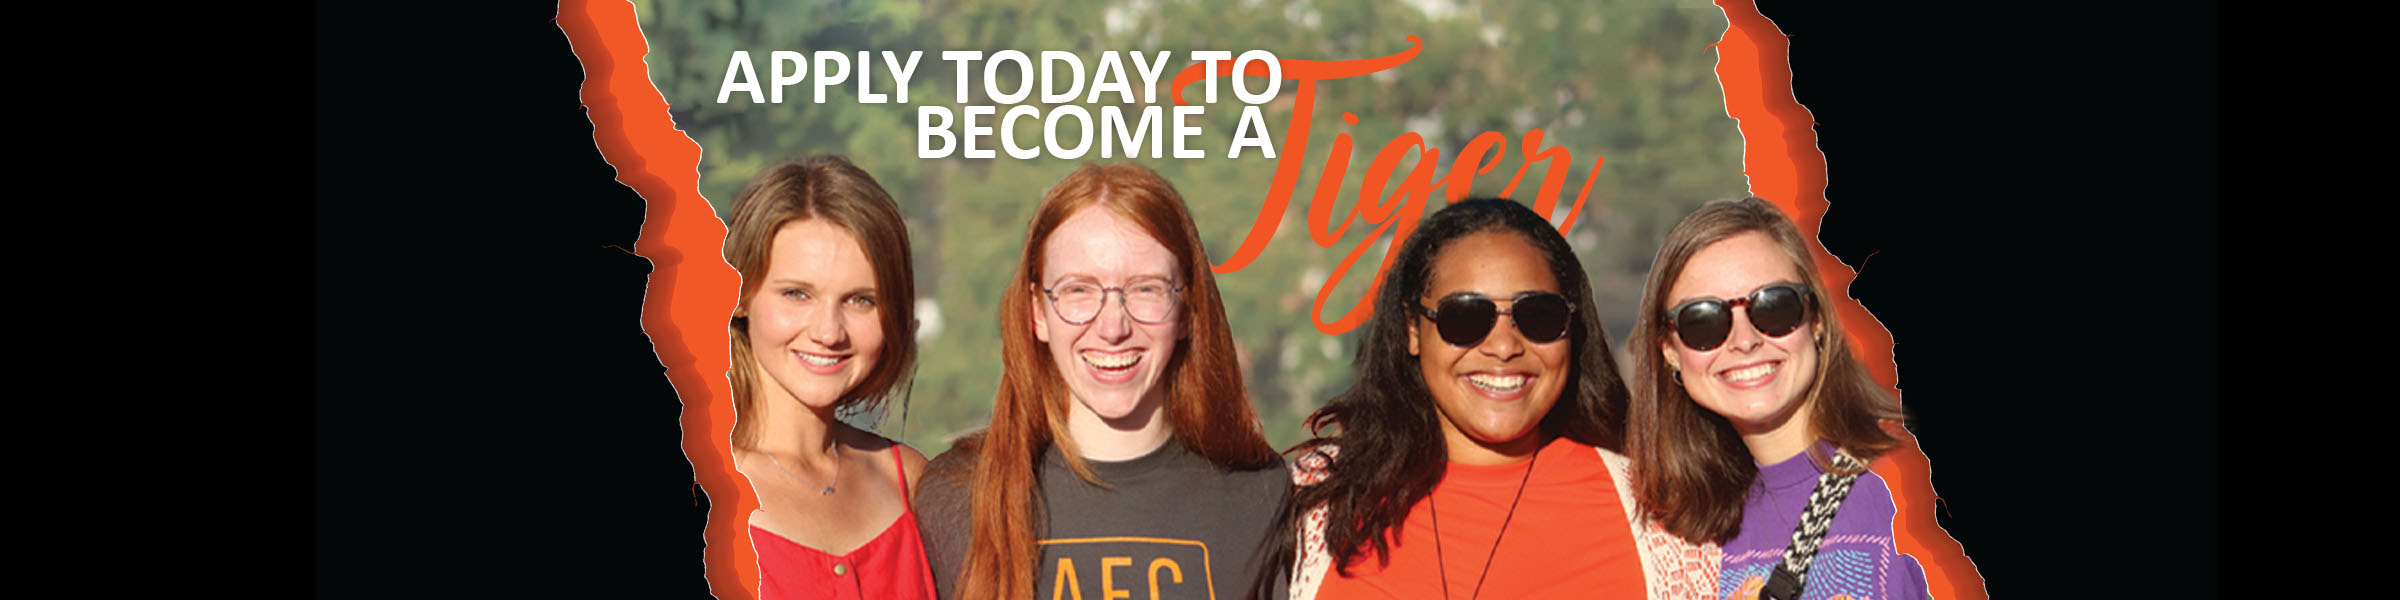 Apply today to be a tiger